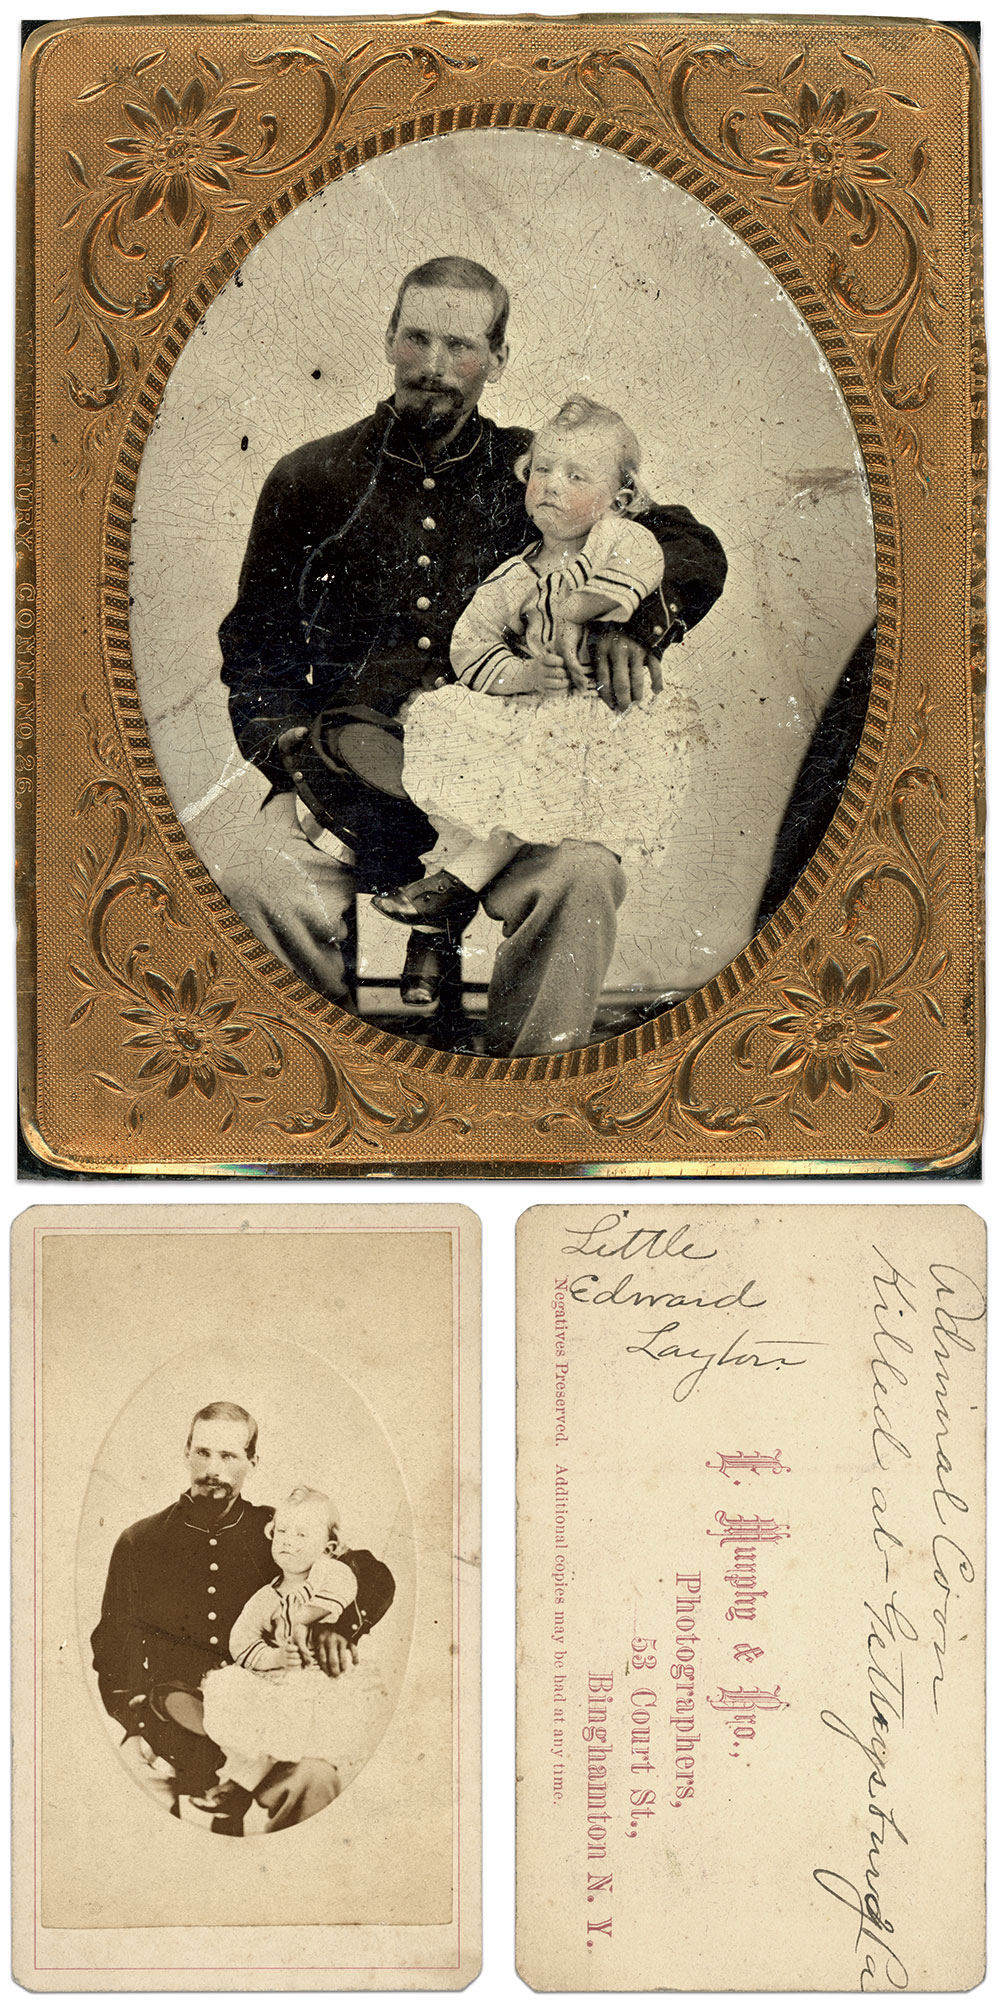 Sixth-plate tintype attributed to a photographer at Camp Susquehanna, Binghamton, N.Y. Charles Joyce Collection; Carte de visite by E. Murphy & Brothers of Binghamton, N.Y. Cara Leigh Stewart Collection.